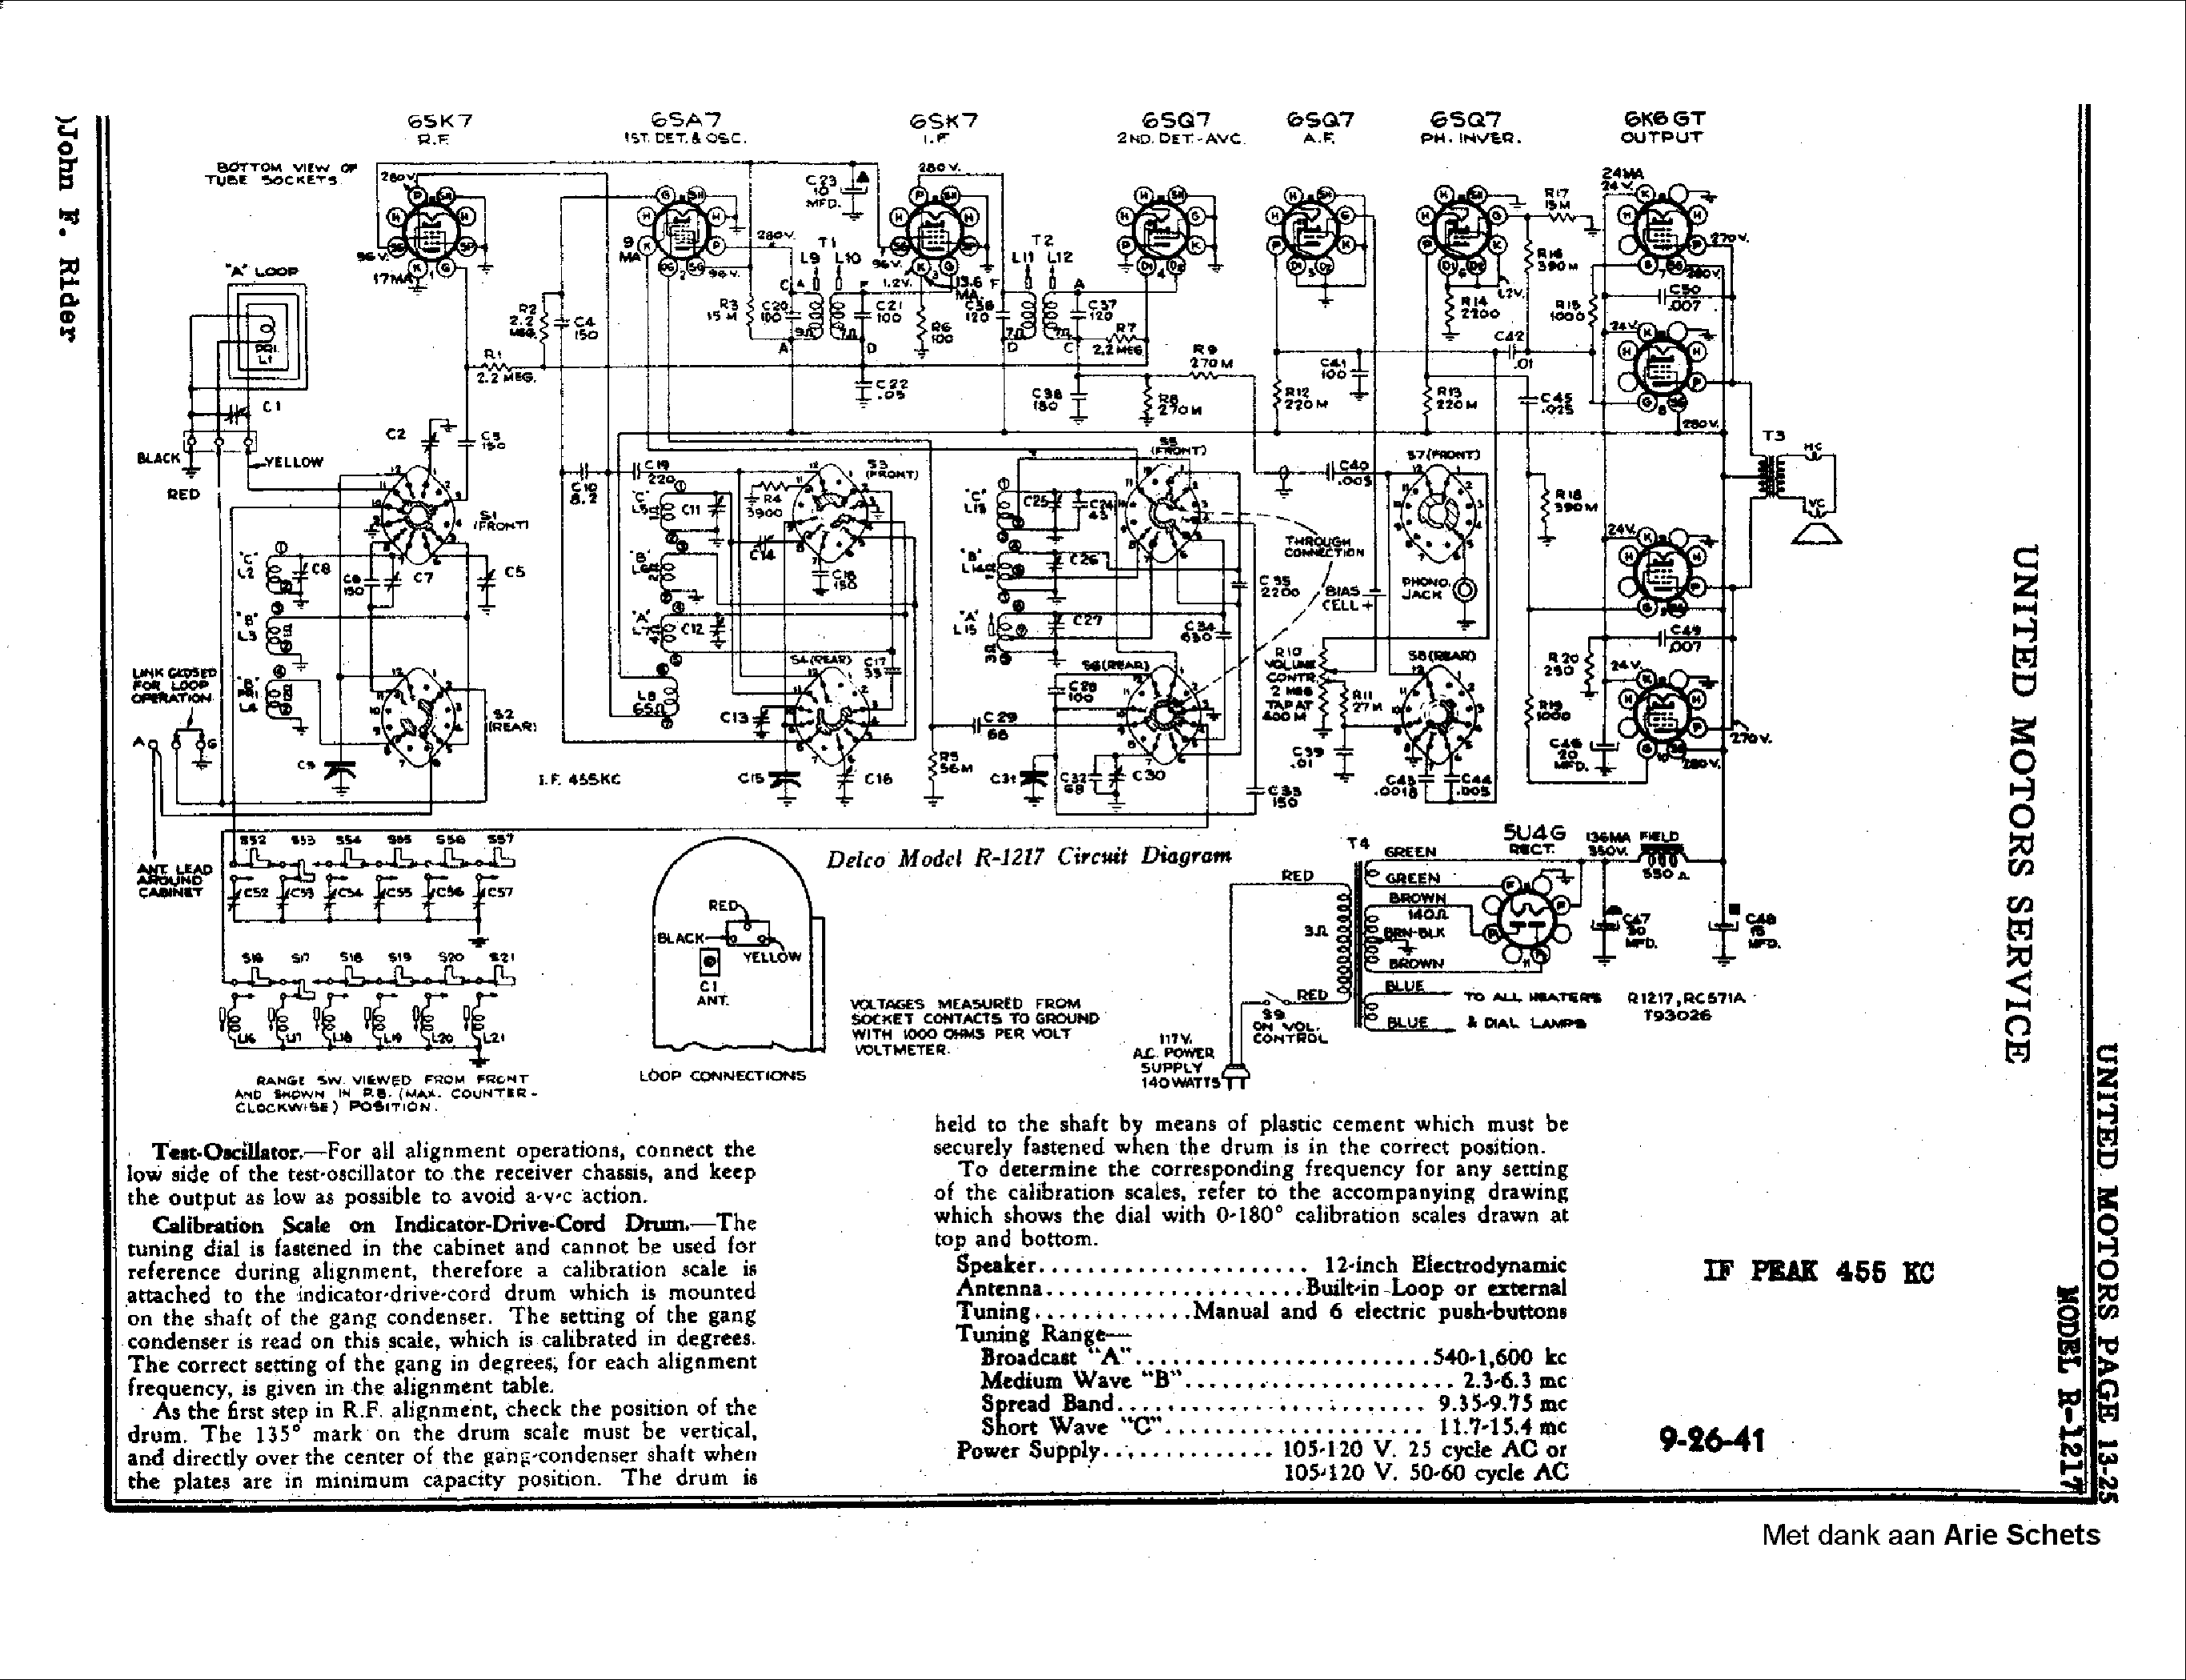 delco r1217 radio 1941 sch service manual download